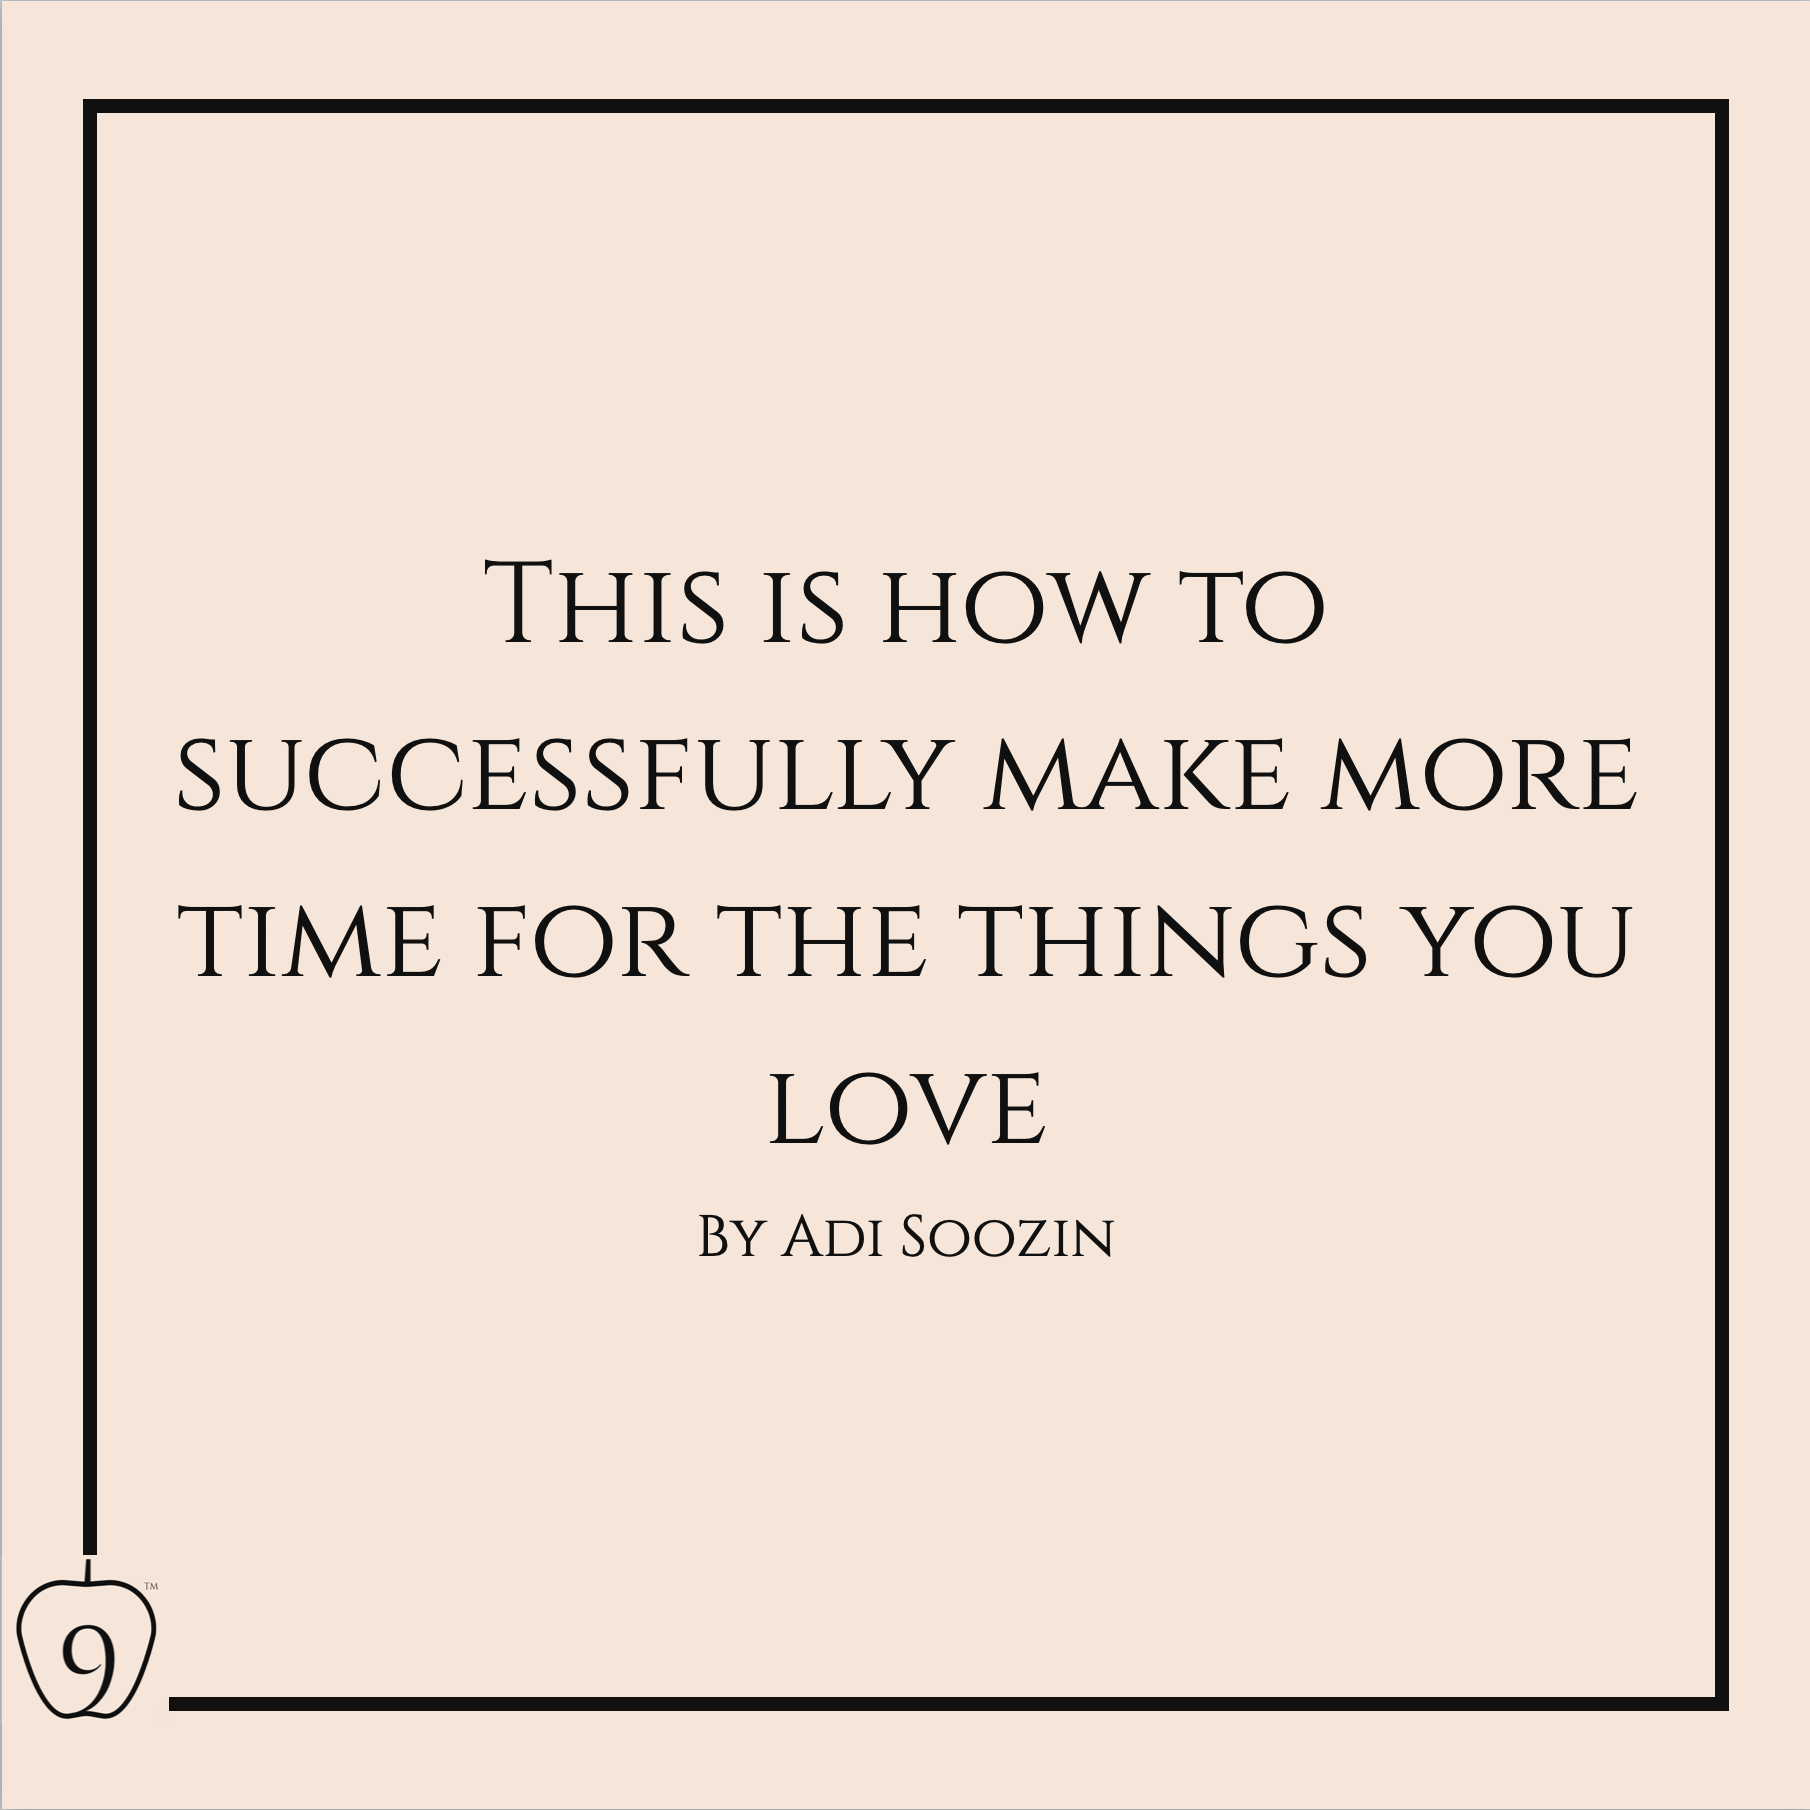 This Is How To Successfully Make More Time For The Things You Love